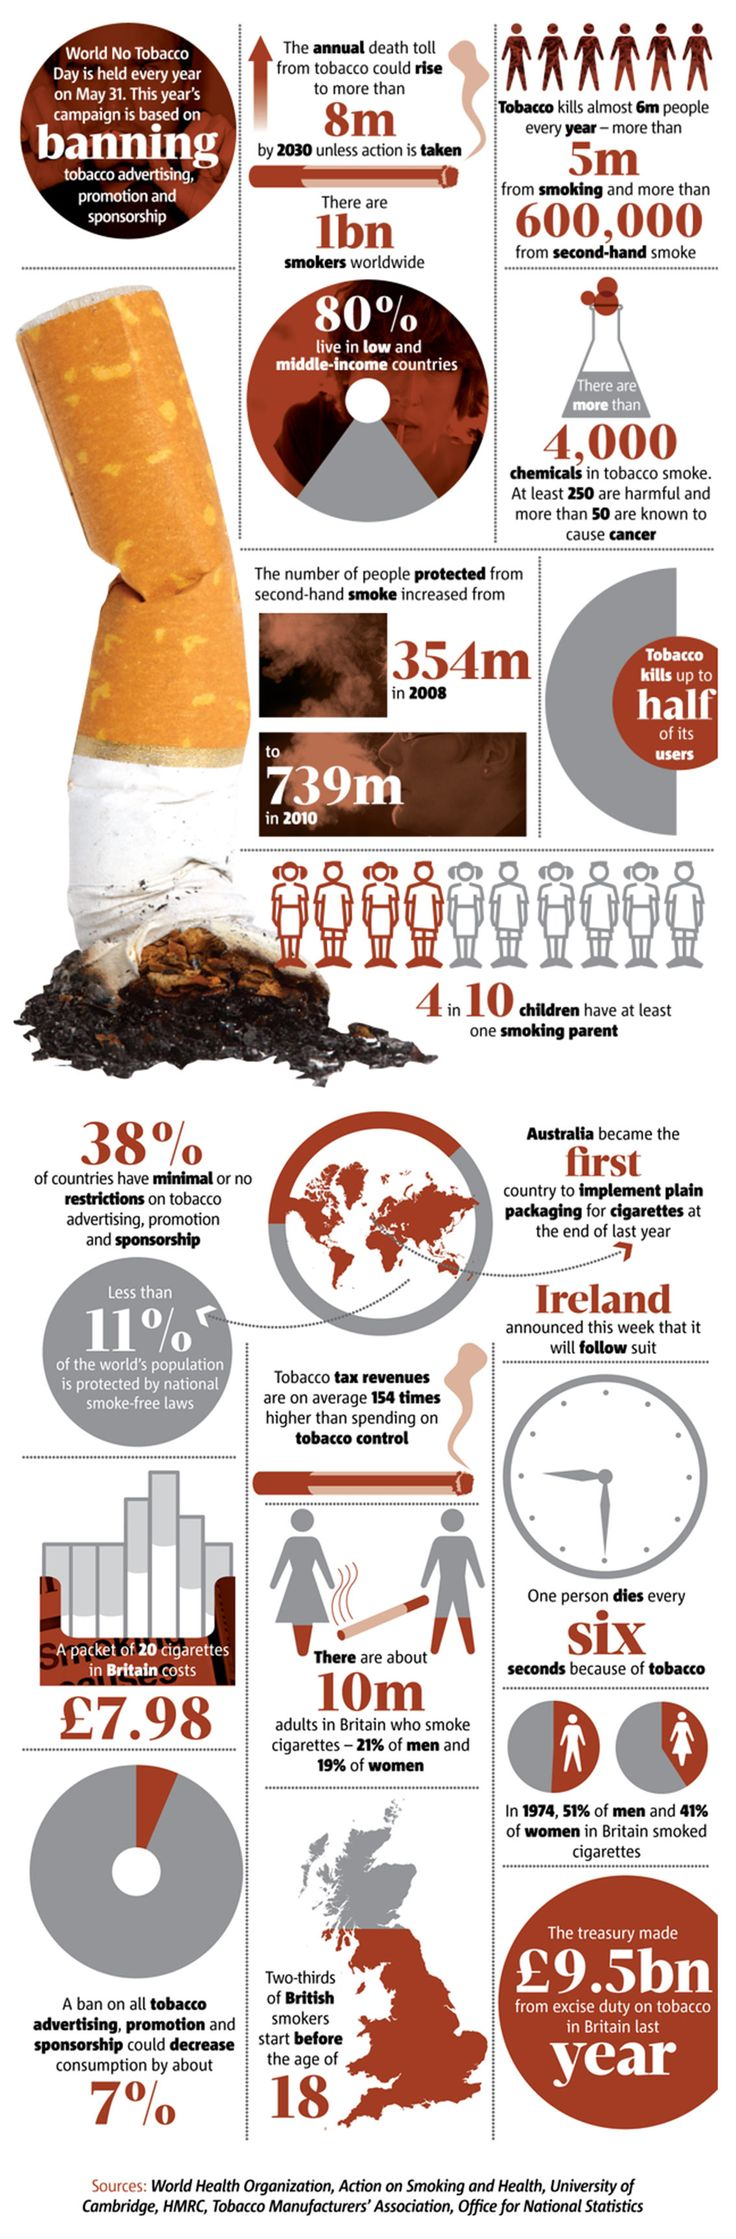 World No Tobacco Day: Smoking Statistics - Infographic. Topic: smoking, health, statistics, cigarette